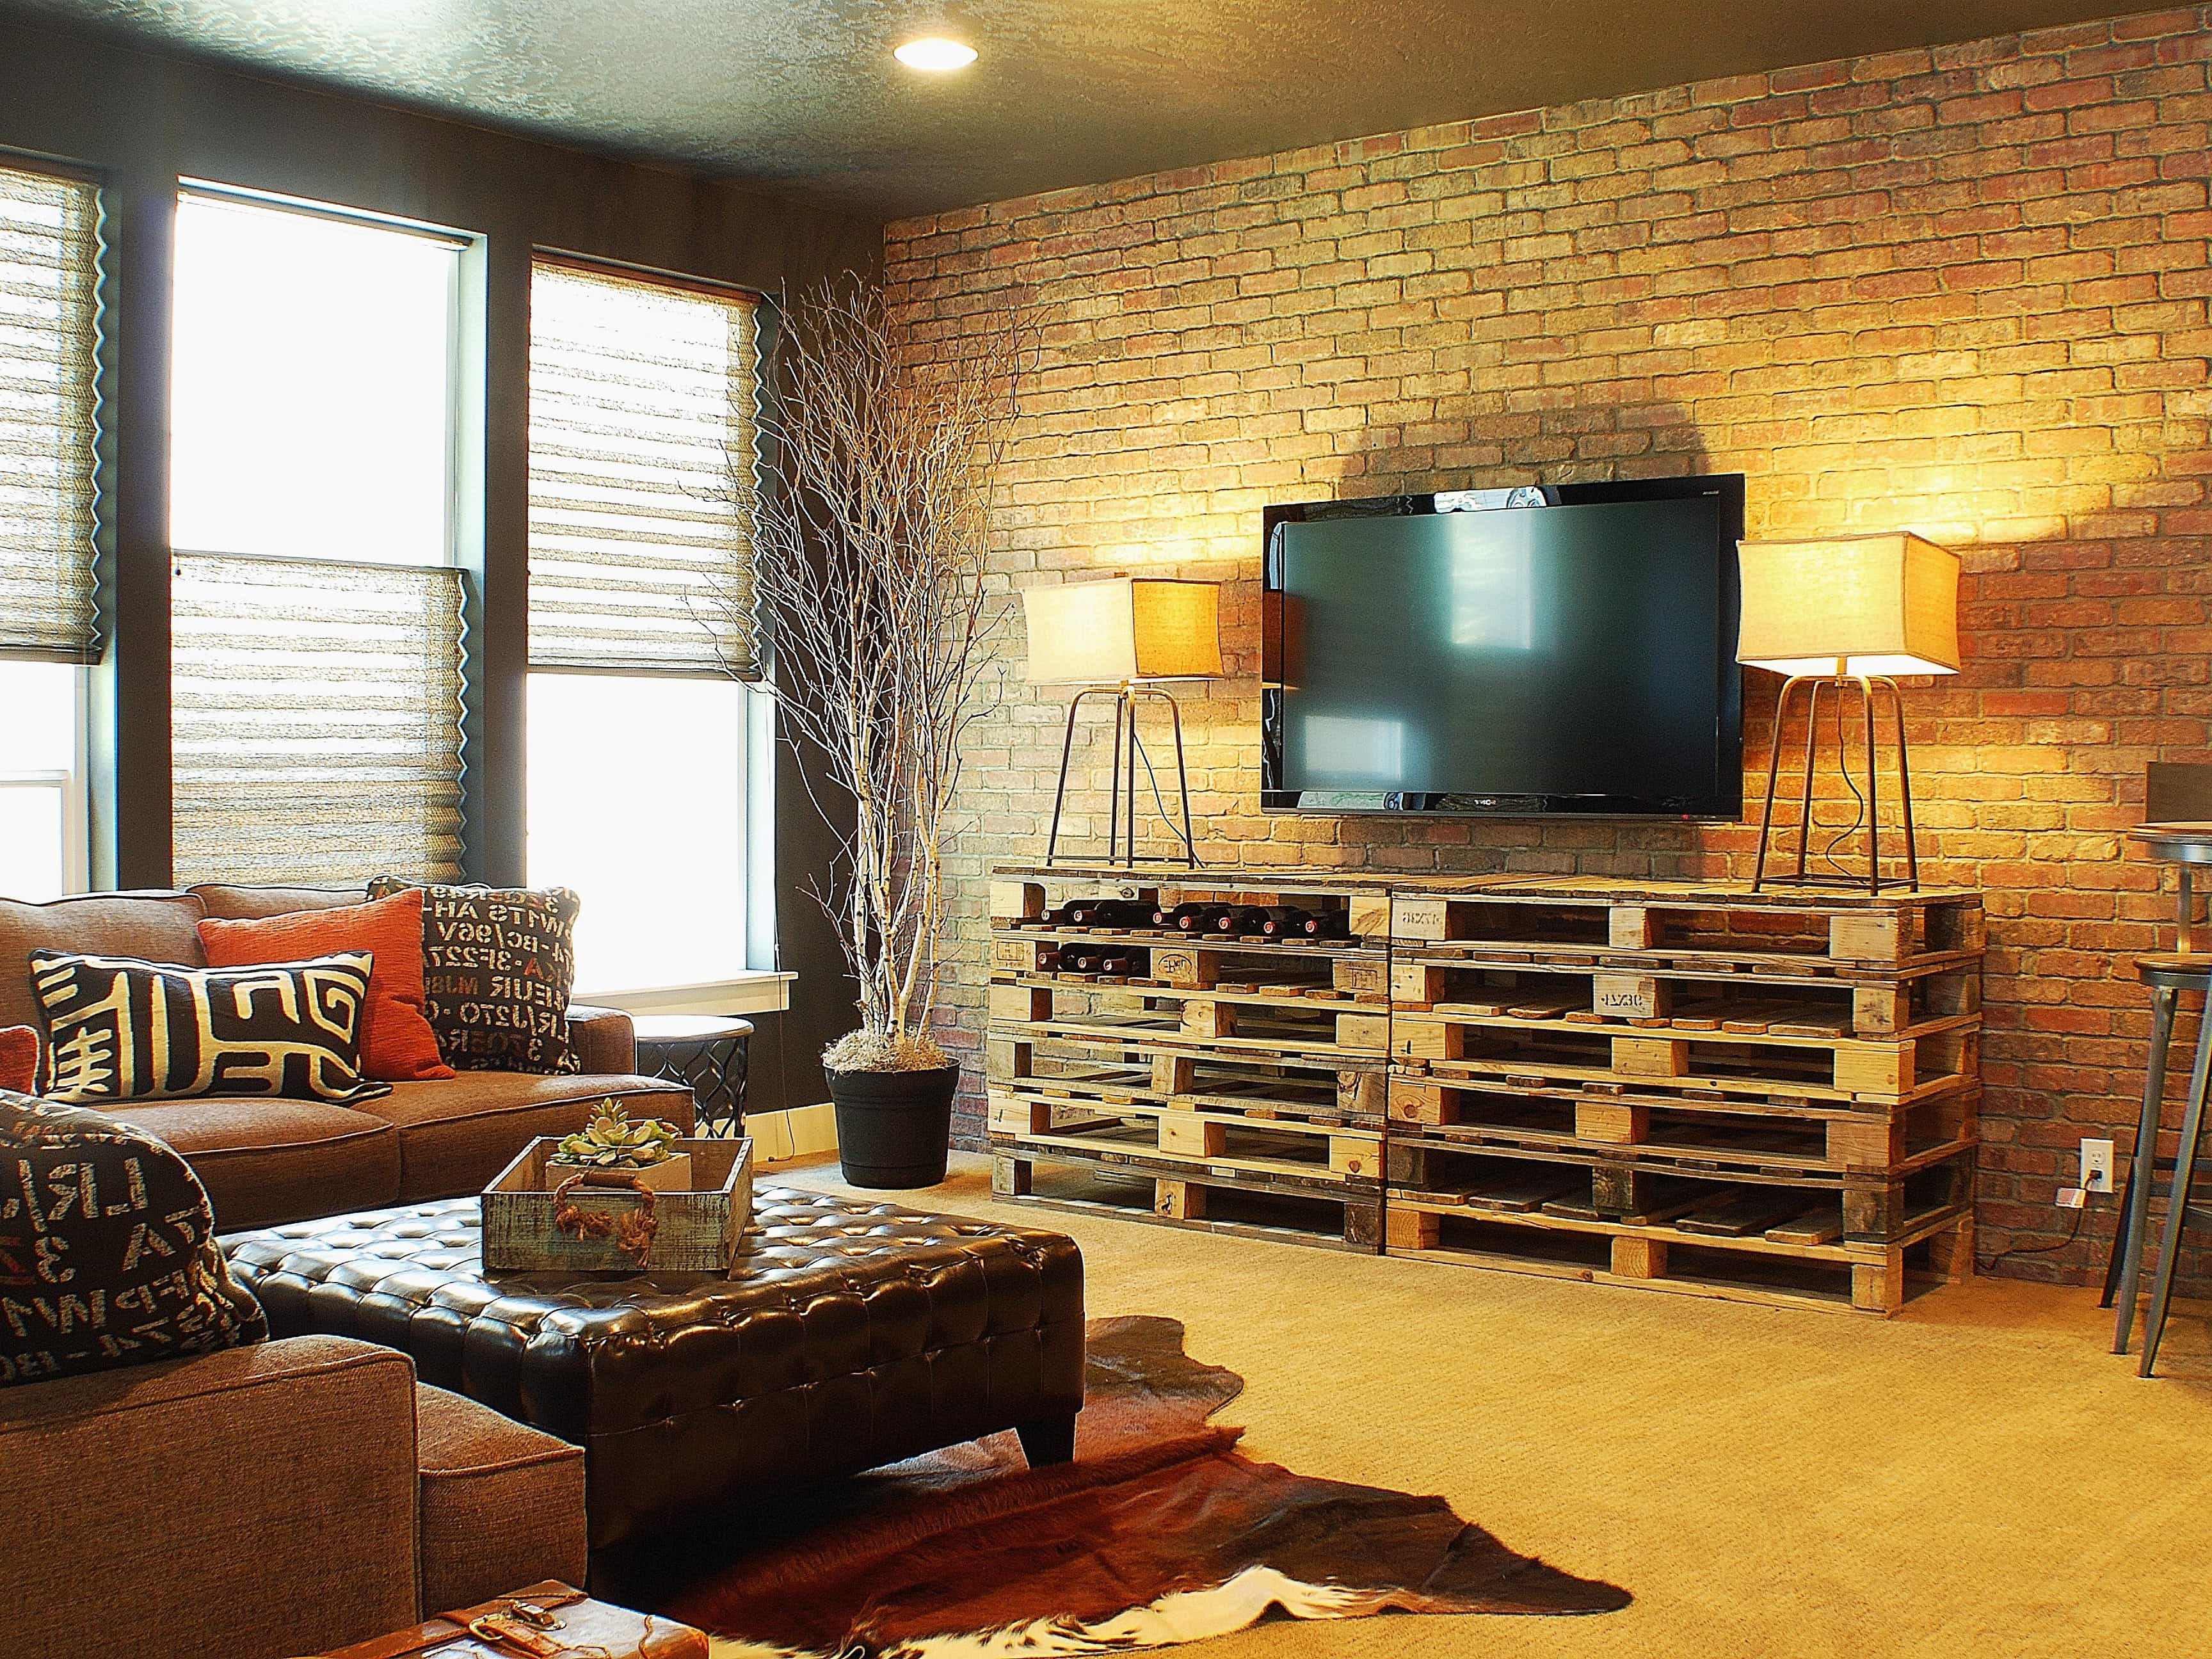 Rustic Living Room With Custom Pallet Table And Brick Wall (Image 23 of 30)